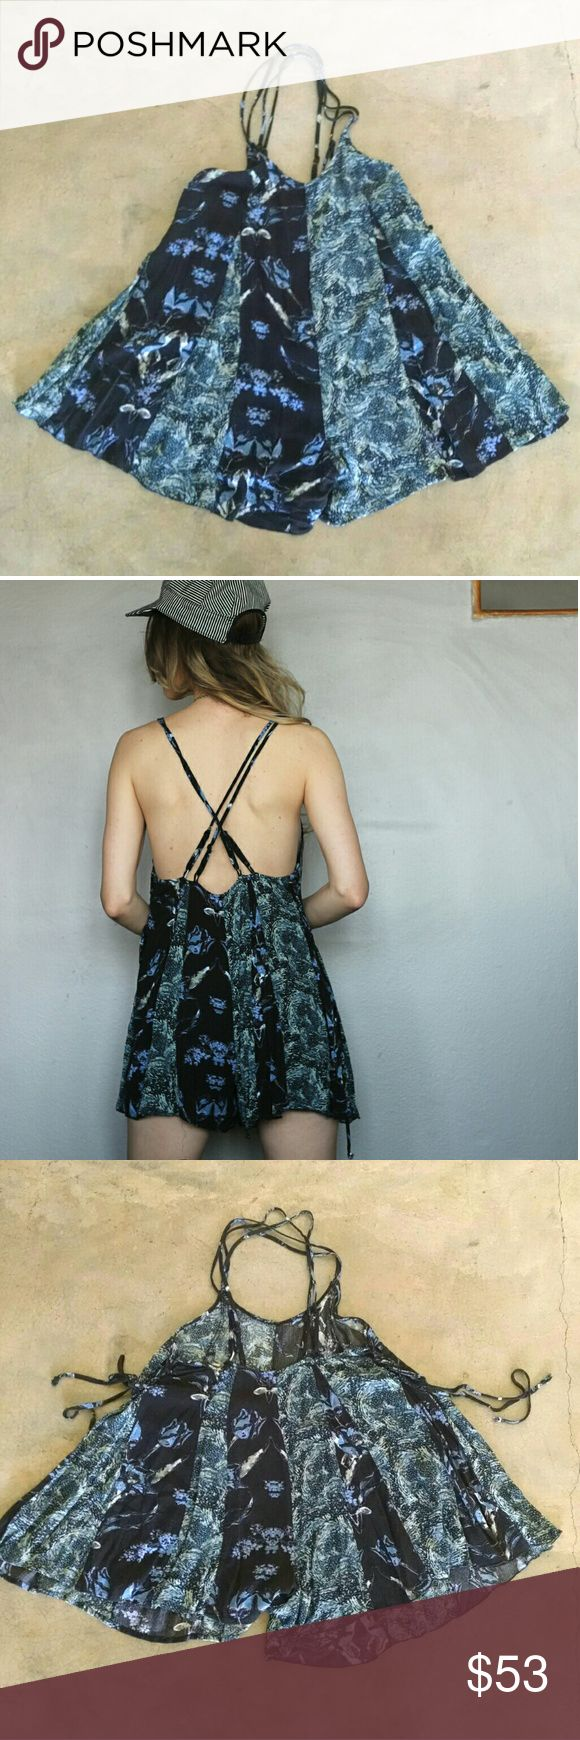 """🍄 Free People Flowy Romper Playsuit Adorable comfortable Free People playsuit strappy - free flowing - buffet - day drinking friendly fit tag size xs fits xs-s and prob fine for m too. So cute shown on 5'8"""" size s/4. mild fading/pilling and a couple of stray threads at edges/straps - looks great overall.   Tags beach festival playsuit romper shorts FP 90 grunge bohemian shorts resort vacation floral Free People Pants Jumpsuits & Rompers"""